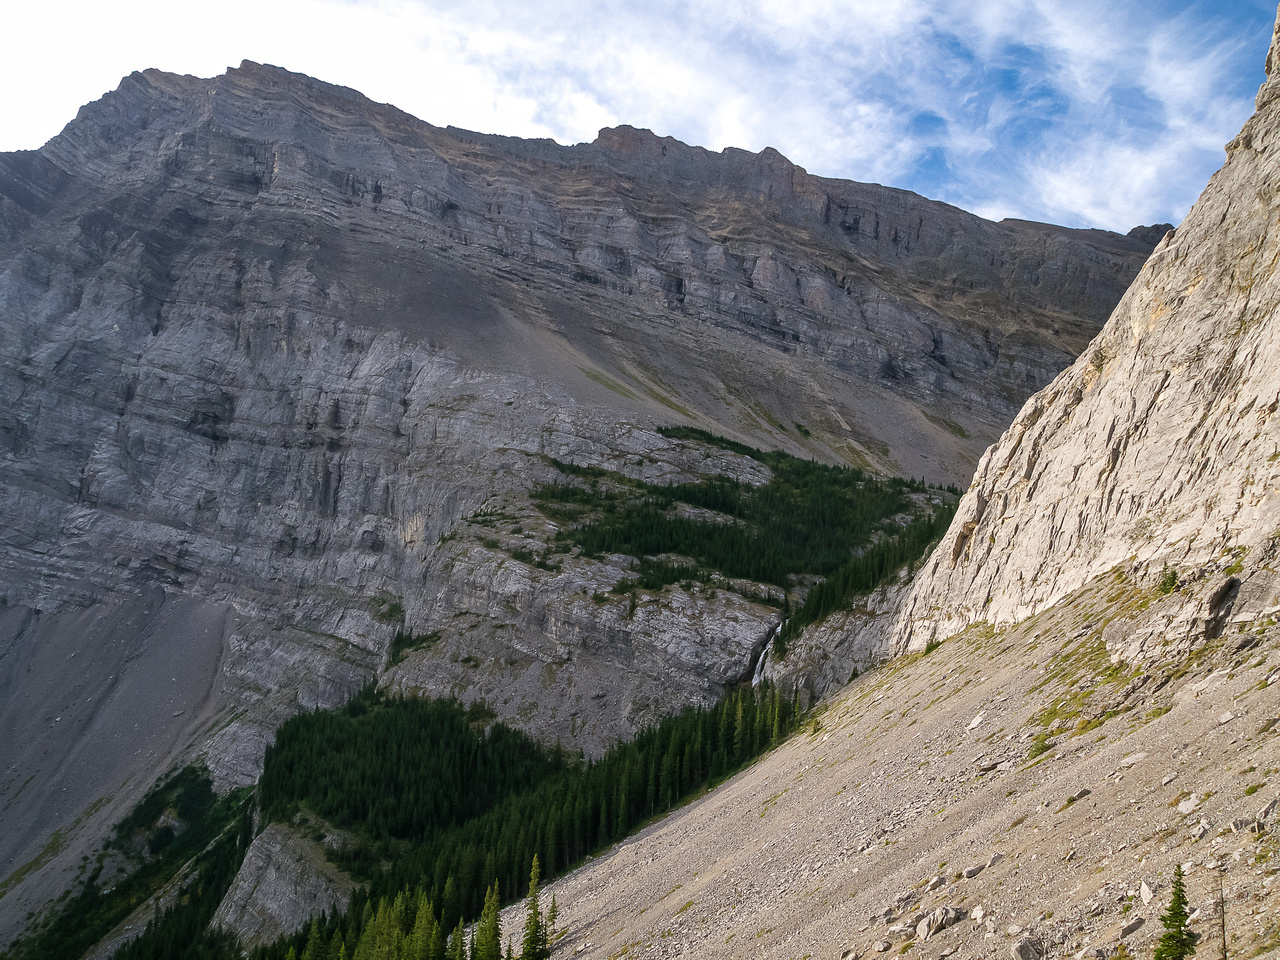 Looking back at the hiking route to Ribbon Lake and the upper part of Ribbon Falls going down the headwall.